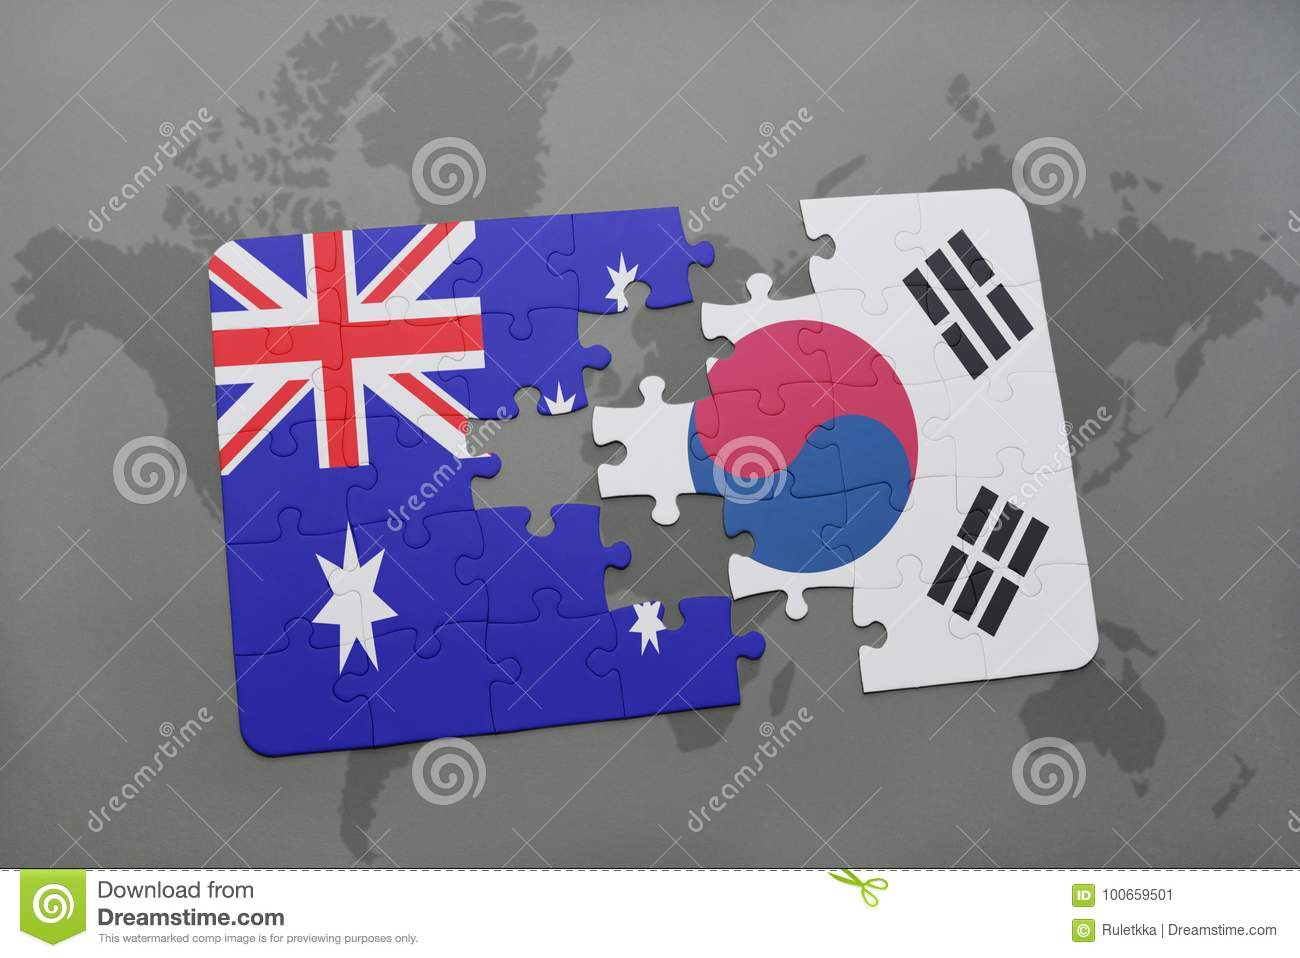 Korea Map Australia on europe map, seoul map, asia map, united states map, euro countries map, japan map, iran map, formosa map, korean peninsula map, rwanda map, camp humphreys map, usa map, wwii map, persia map, russia map, china map, ireland map, hong kong map, korean war map,